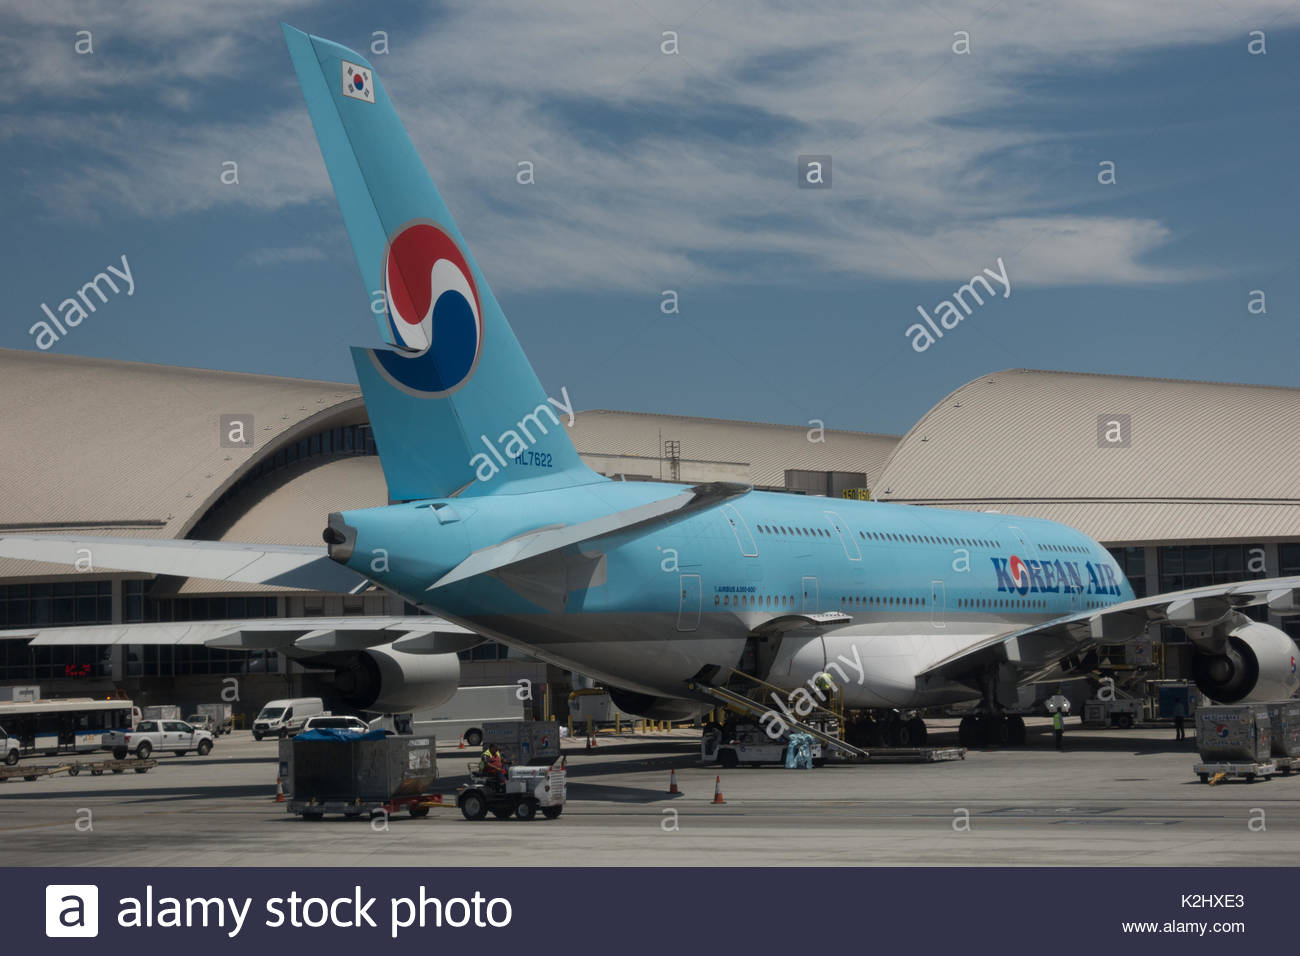 A Korean Air Airbus A380-861, tail number HL7622, sits at gate 150 of Los Angeles International Airport's Bradley International Terminal. - Stock Image